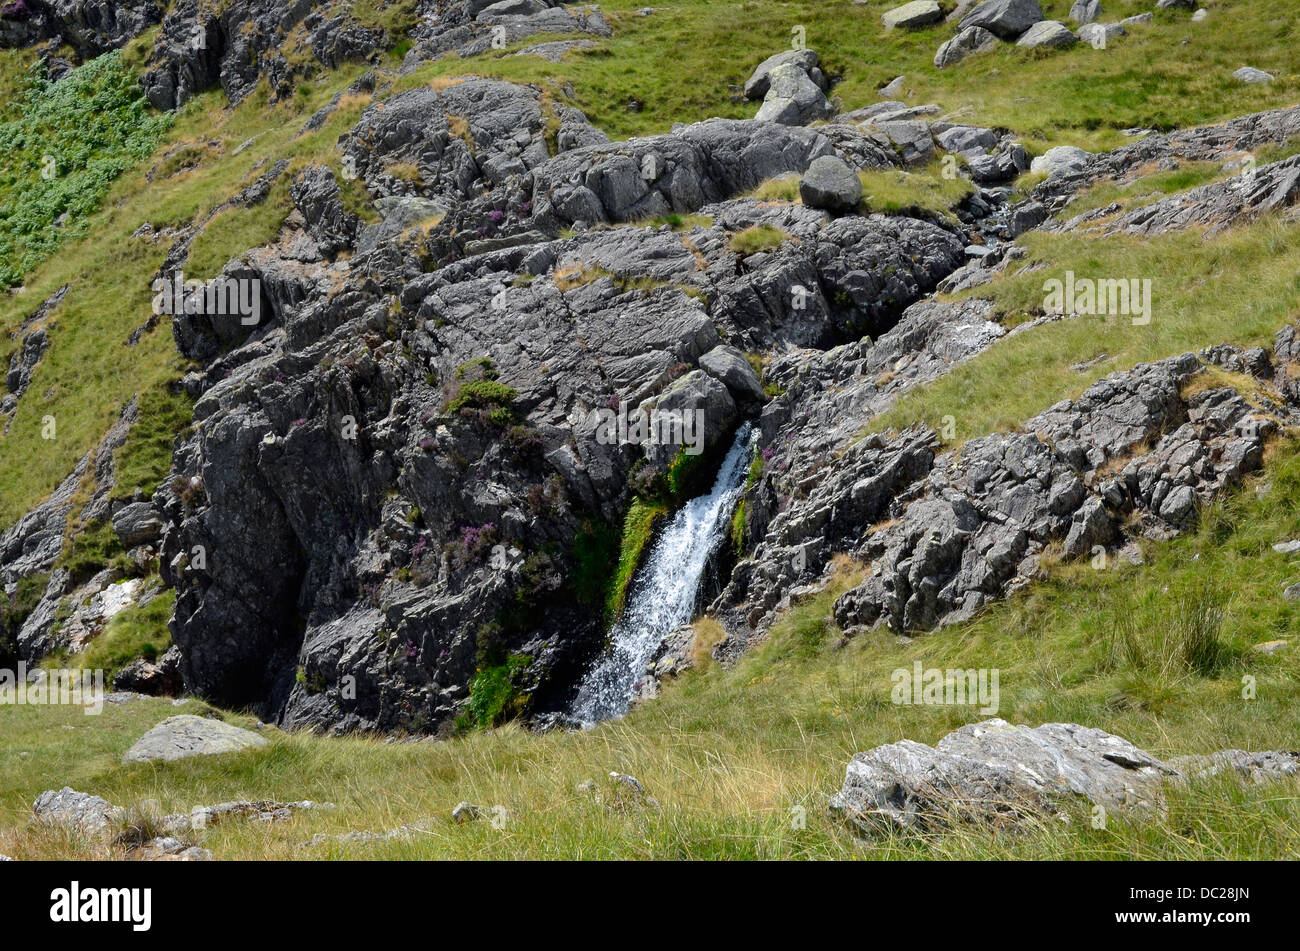 Waterfall and crag, Levers Beck in Copper Mines Valley Coniston, Lake District National Park. - Stock Image